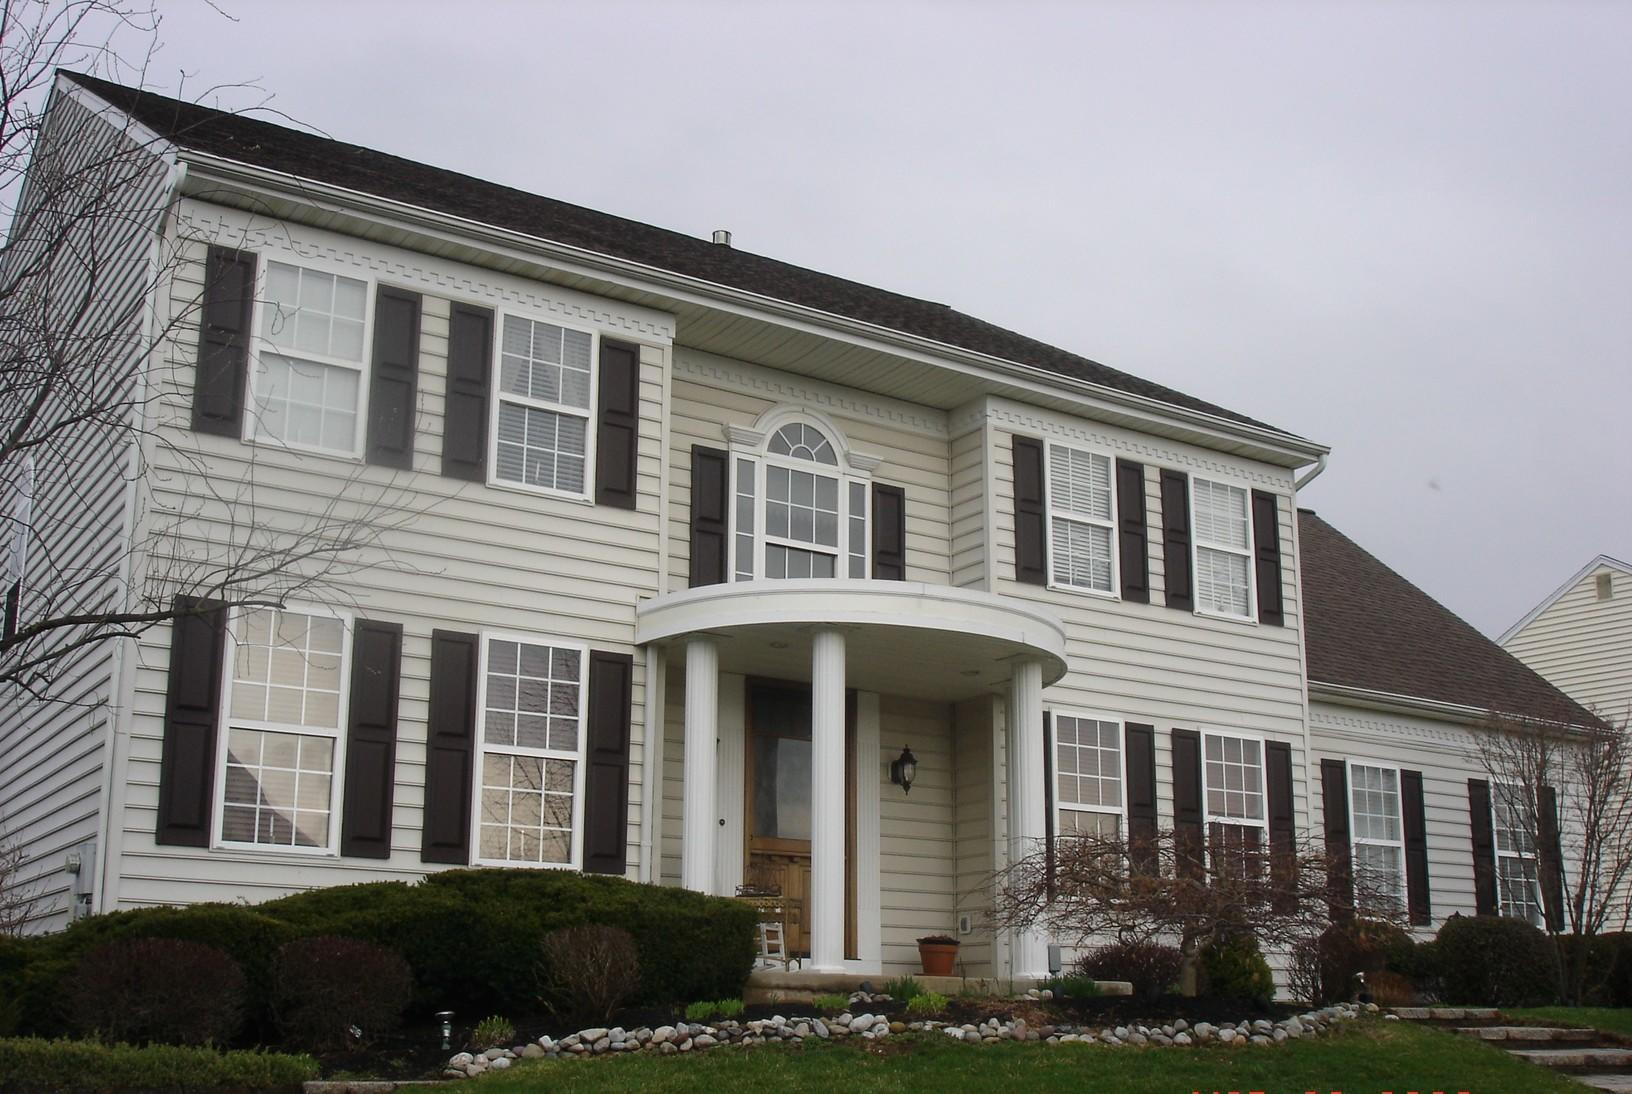 Replacing Original Asphalt Roof and Old Windows with Standing Seam Metal and Fiberglass in Collegeville, PA - Before Photo